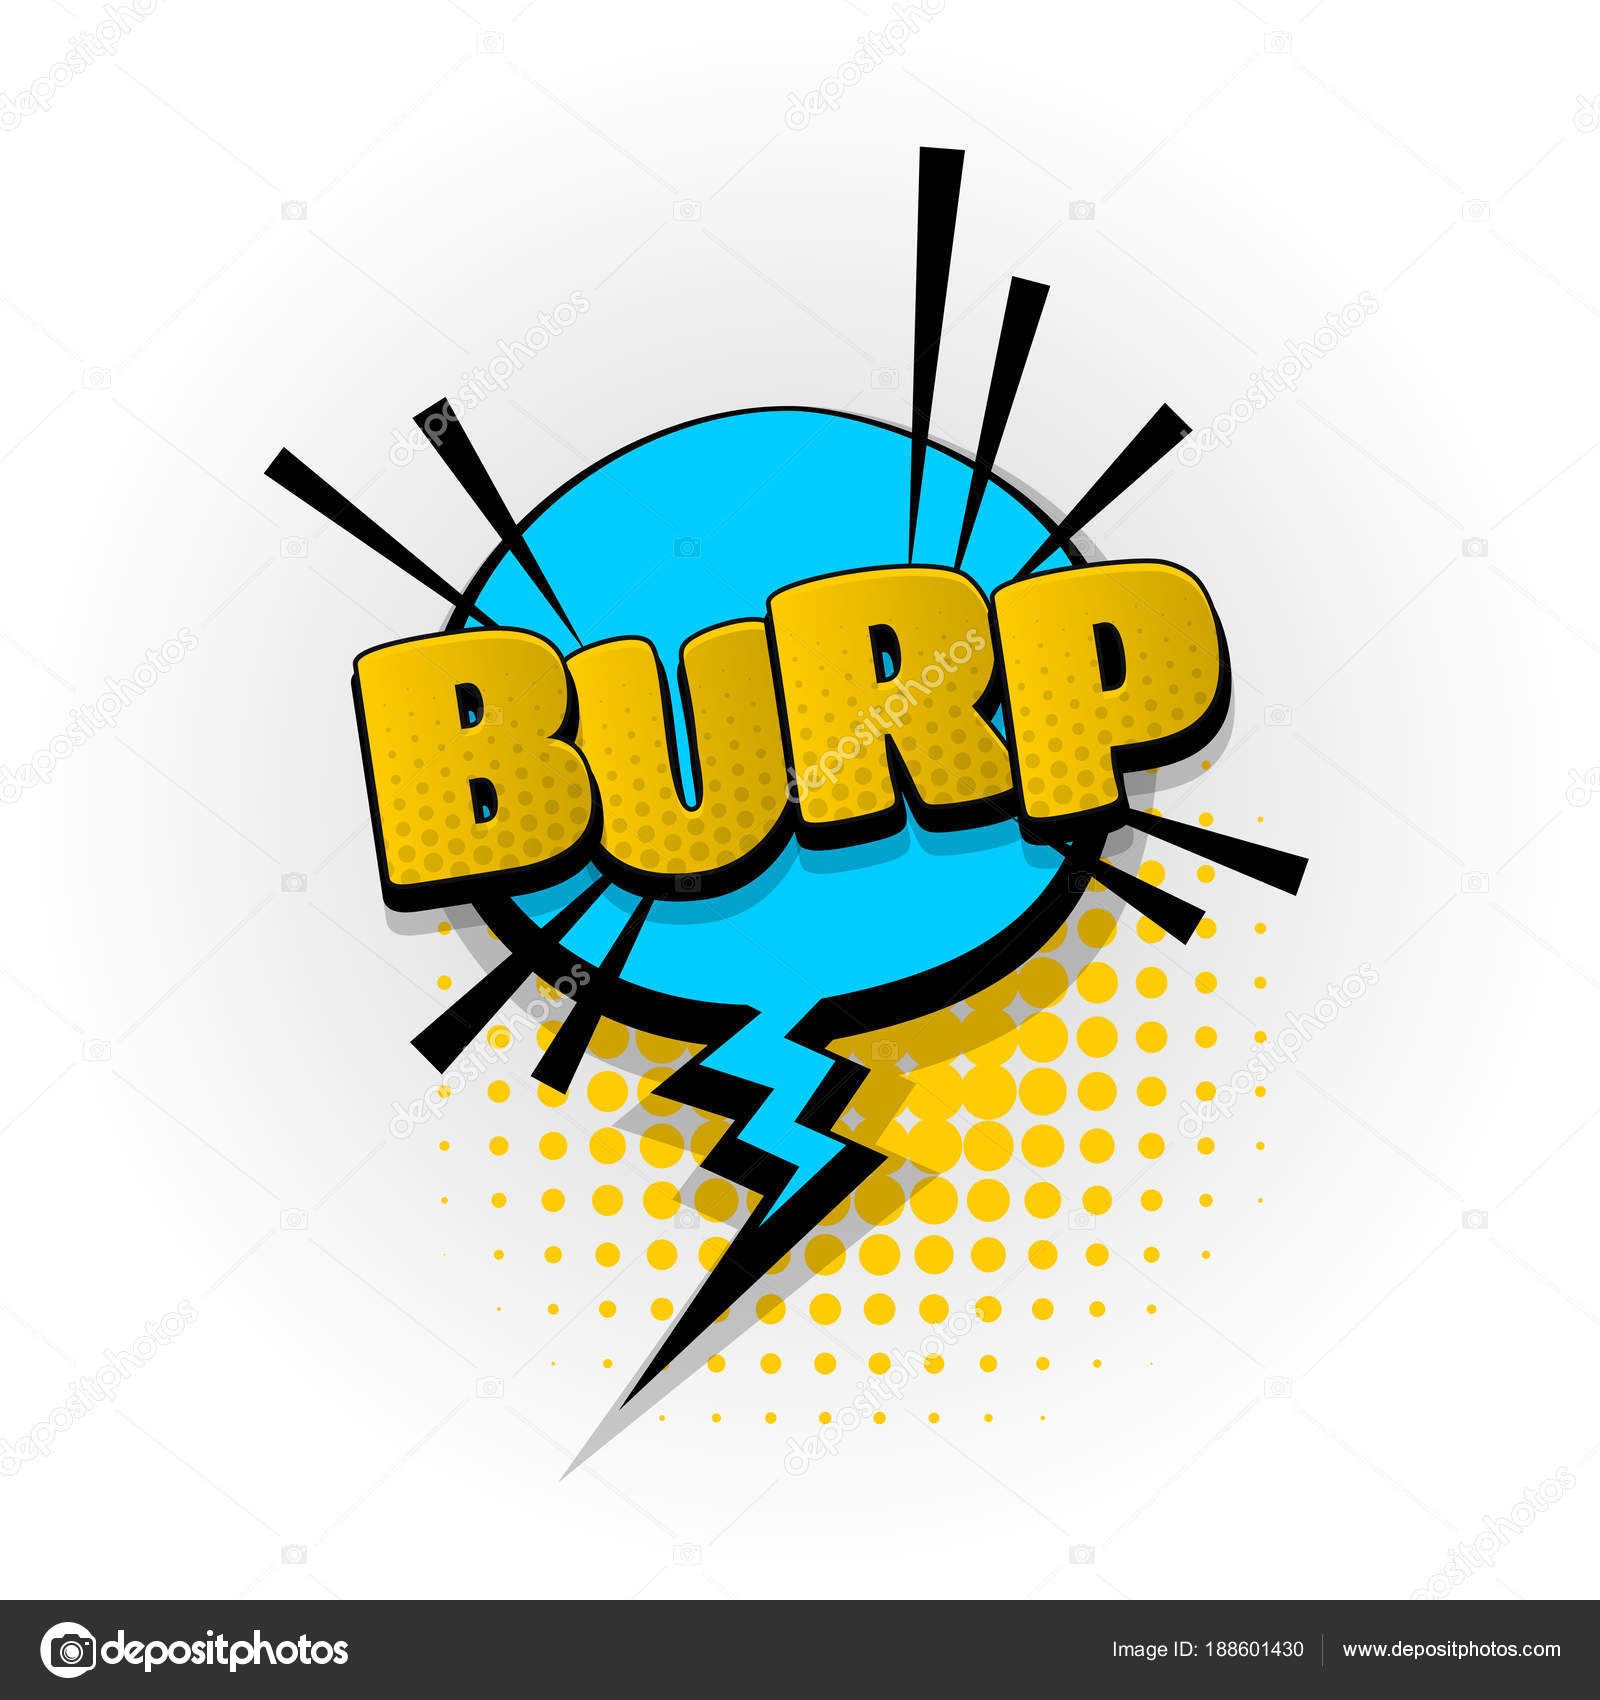 Burp parp sound comic book text pop art — Stock Vector